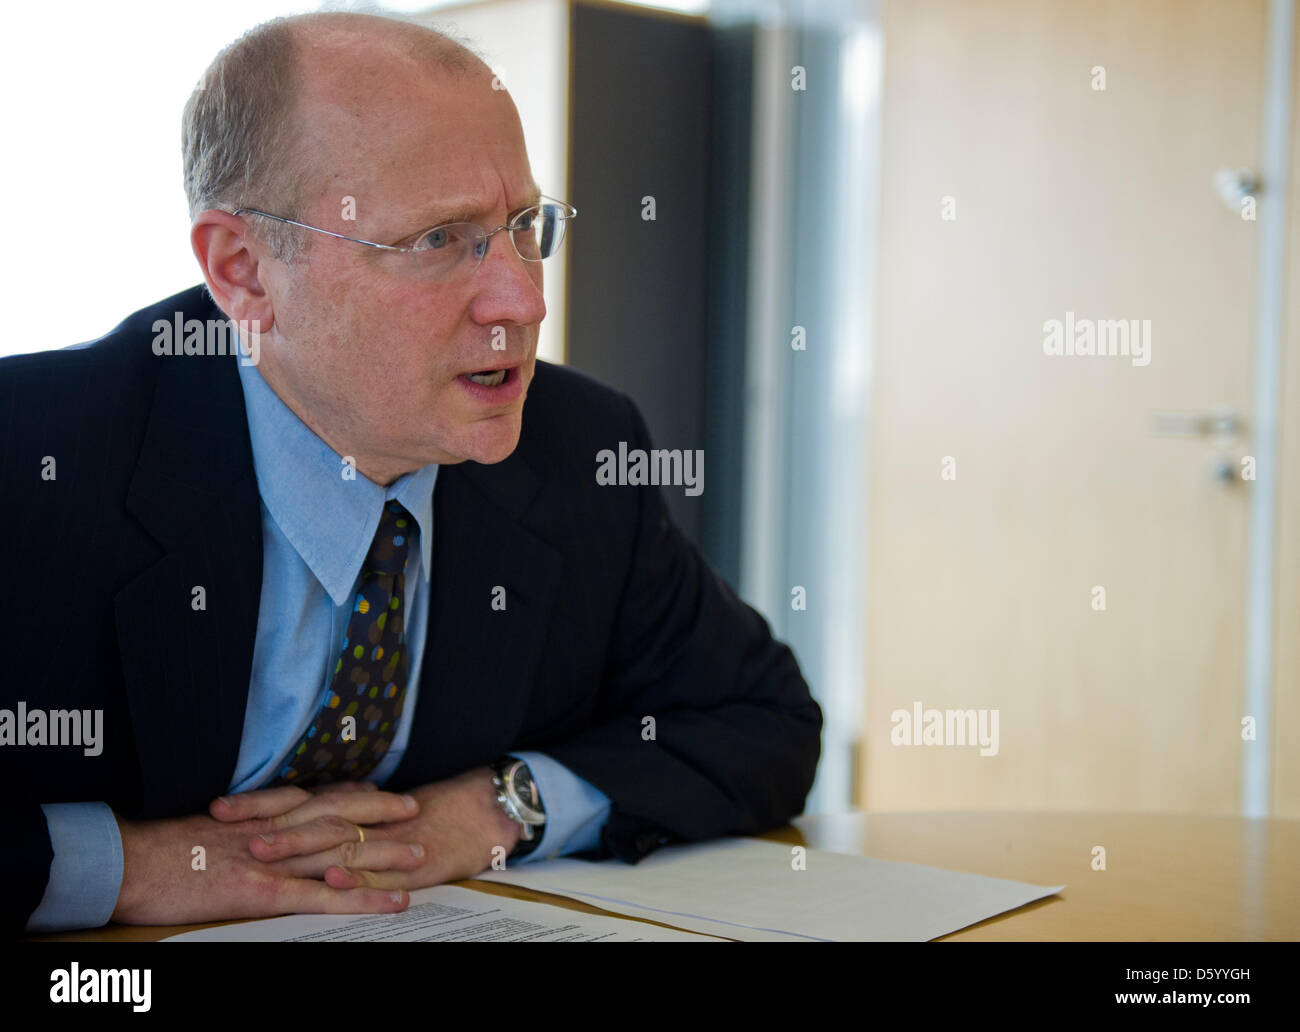 Steve Girsky, Vice Chairman and President of GM Europe and Chairman of the Opel Supervisory Board, gives an interview - Stock Image